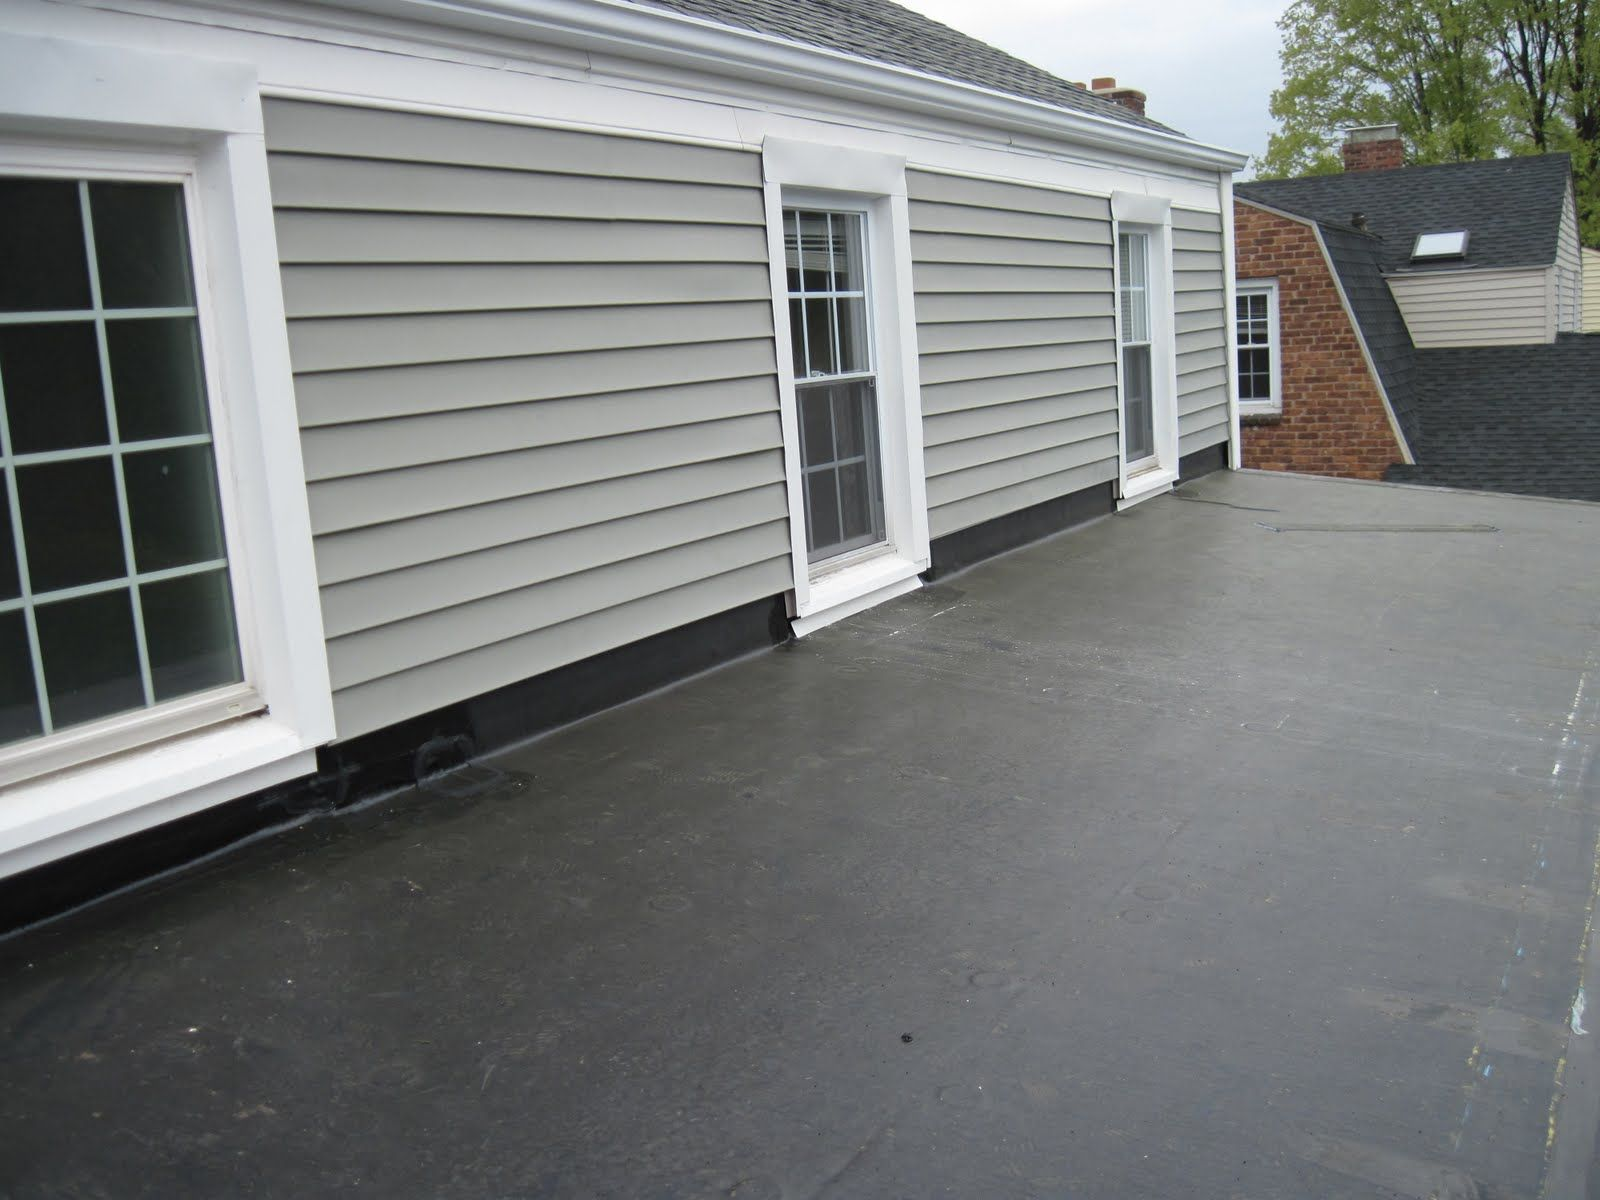 Epdm Has Gained Industry Wide Acceptance And Respect By Providing Immediate And Long Term Roofing Solution Residential Flat Roof Epdm Roofing Roofing